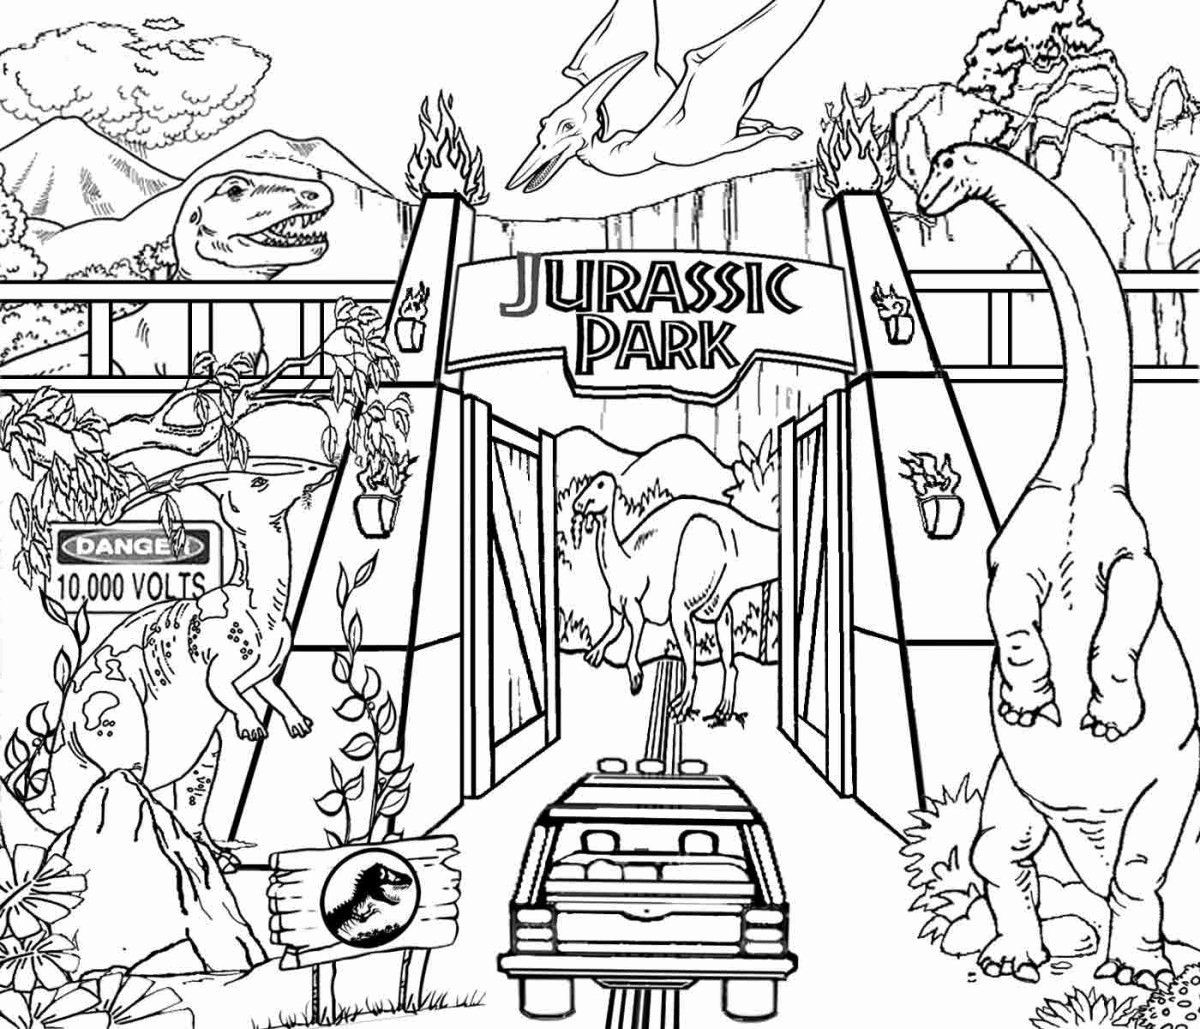 Coloring Pages Military Vehicles New Jurassic Park Colouring Pages Google Search Dinosaur Coloring Pages Lego Coloring Pages Dinosaur Coloring